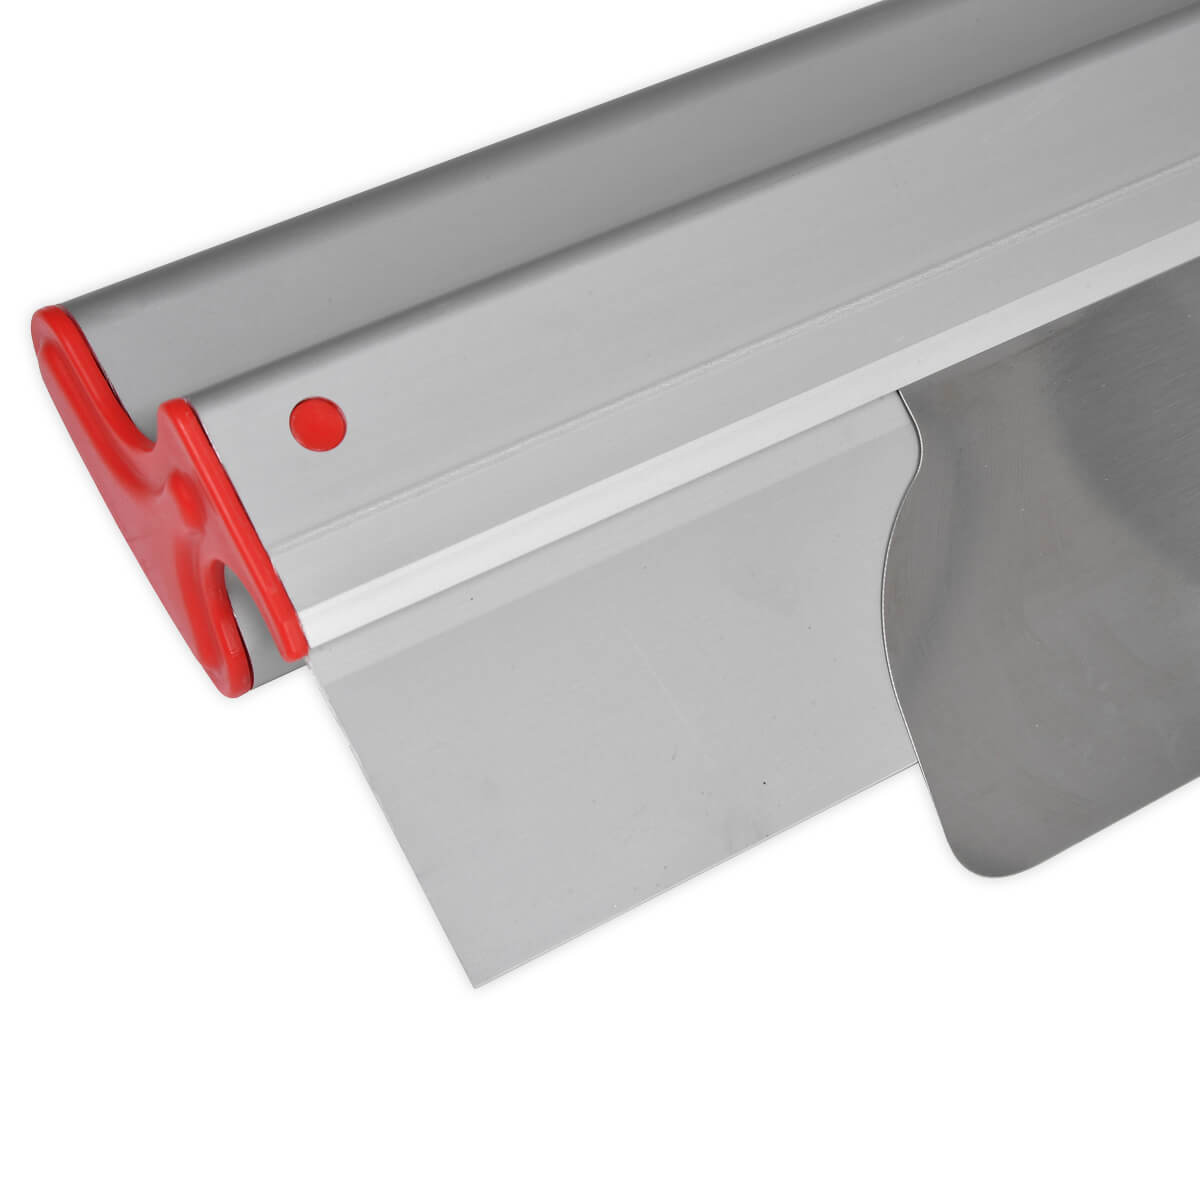 "LEVEL5 24"" drywall smoothing blades feature a replaceable 0.3mm precision stainless steel insert."